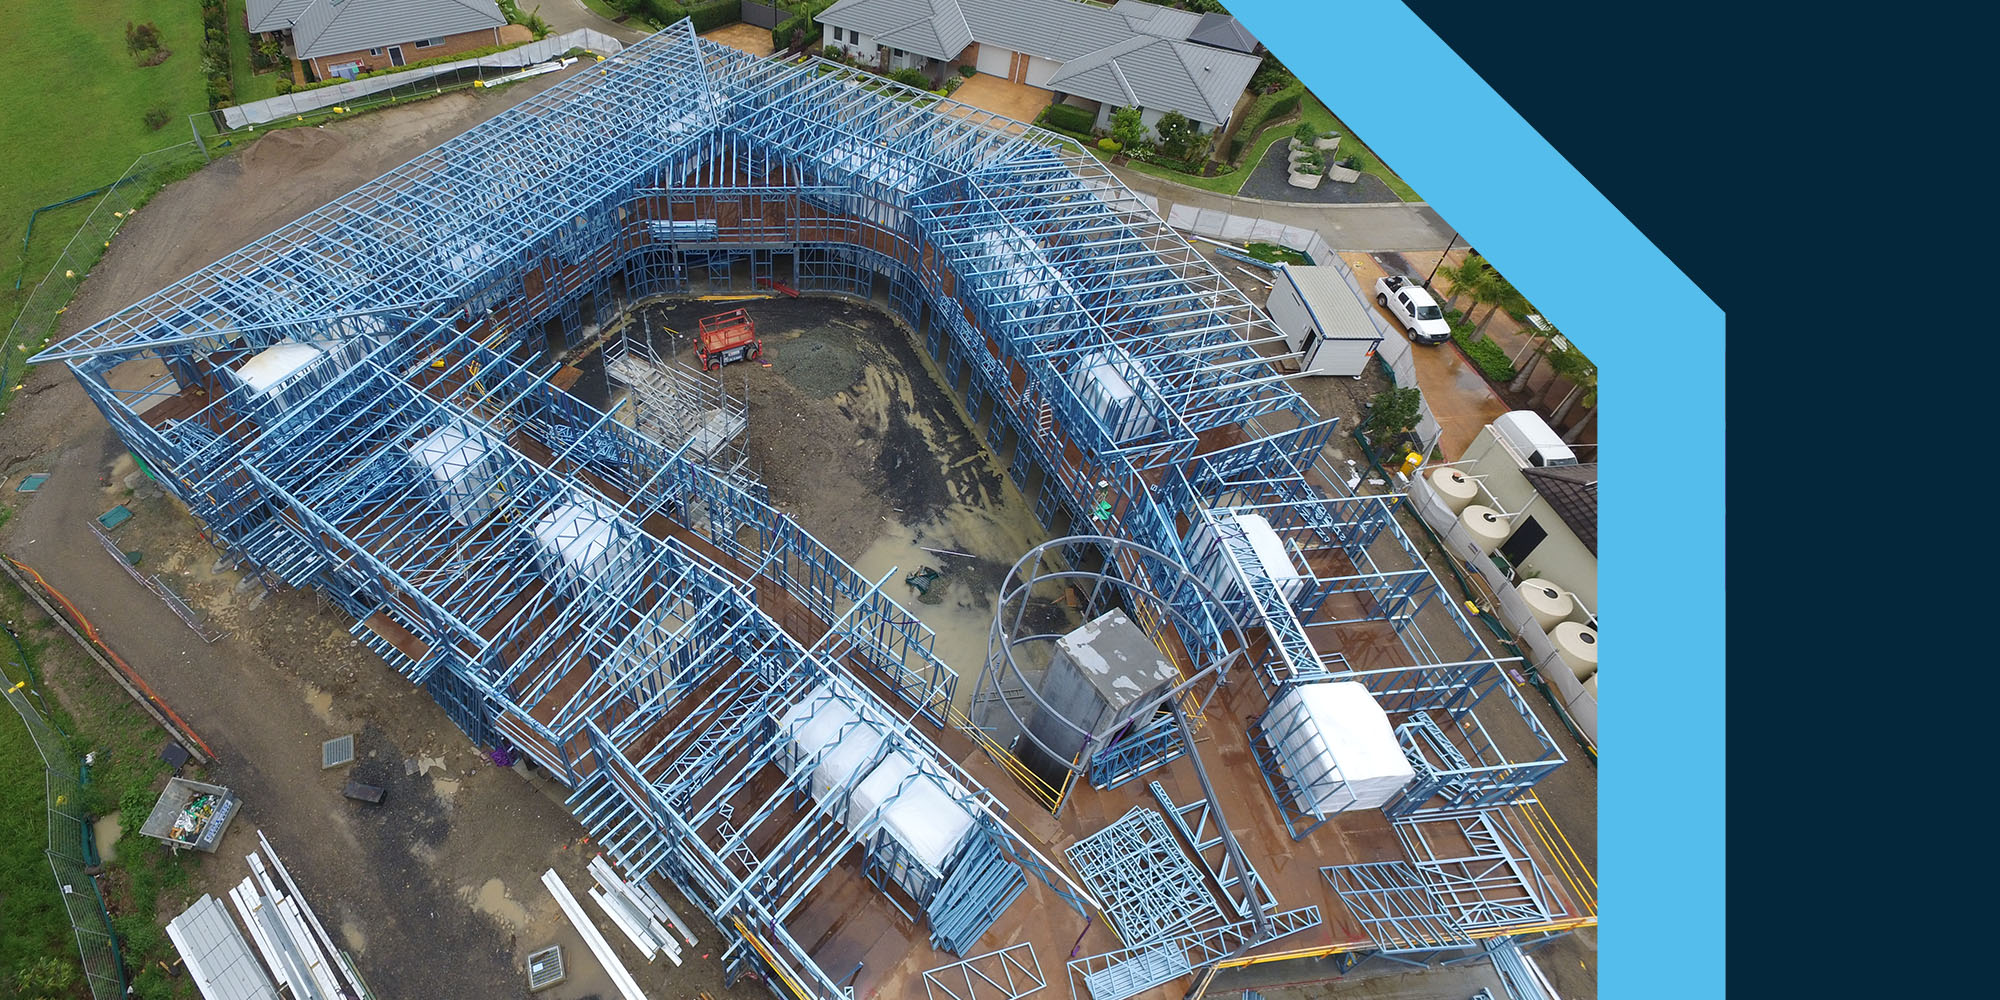 Topsteel Glengara Image - Frames Aerial Shot from Above